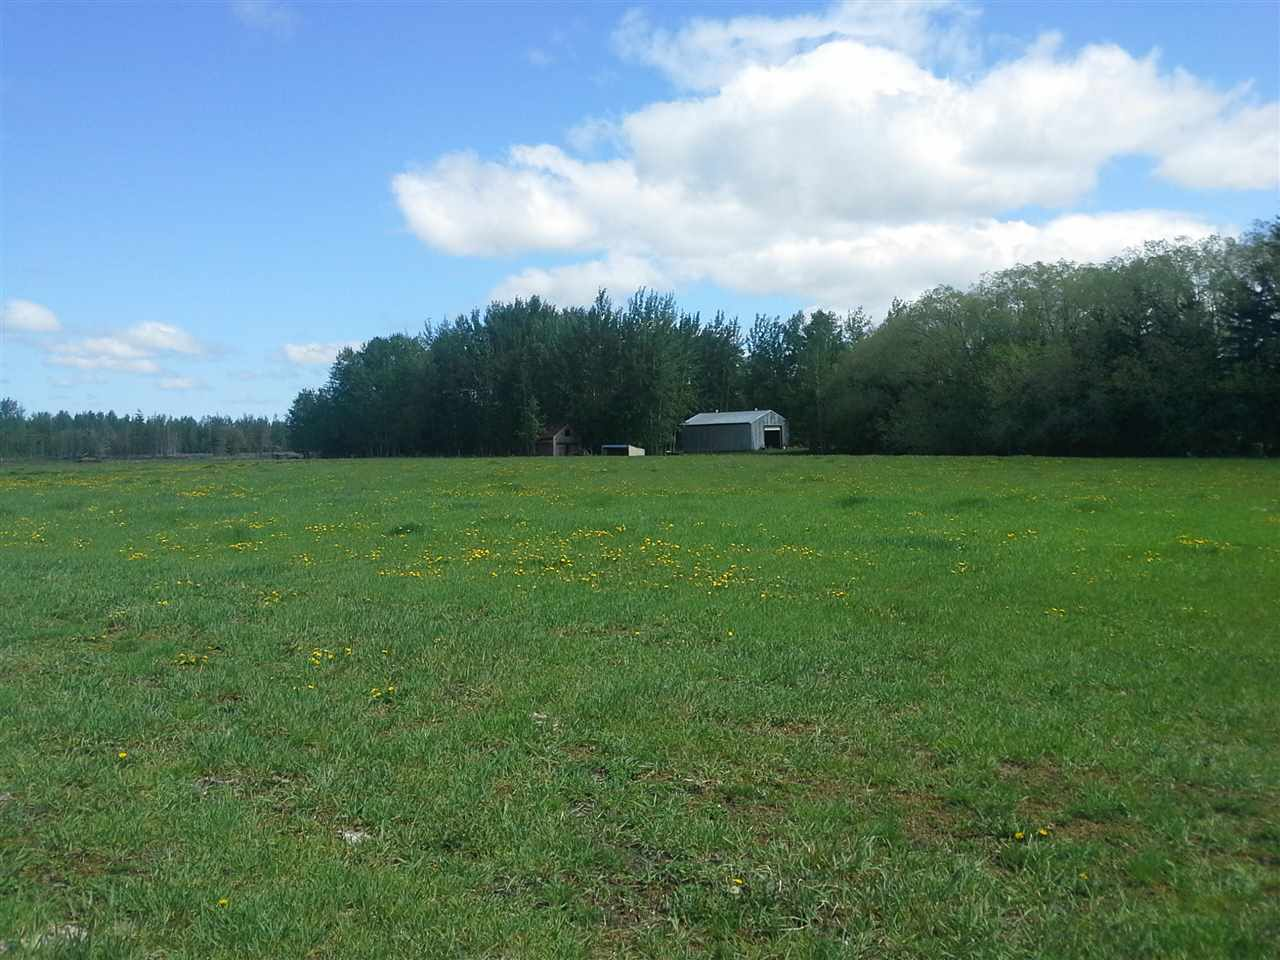 Main Photo: 11 TWP RD 652: Rural Lesser Slave River M.D. Rural Land/Vacant Lot for sale : MLS®# E4082336